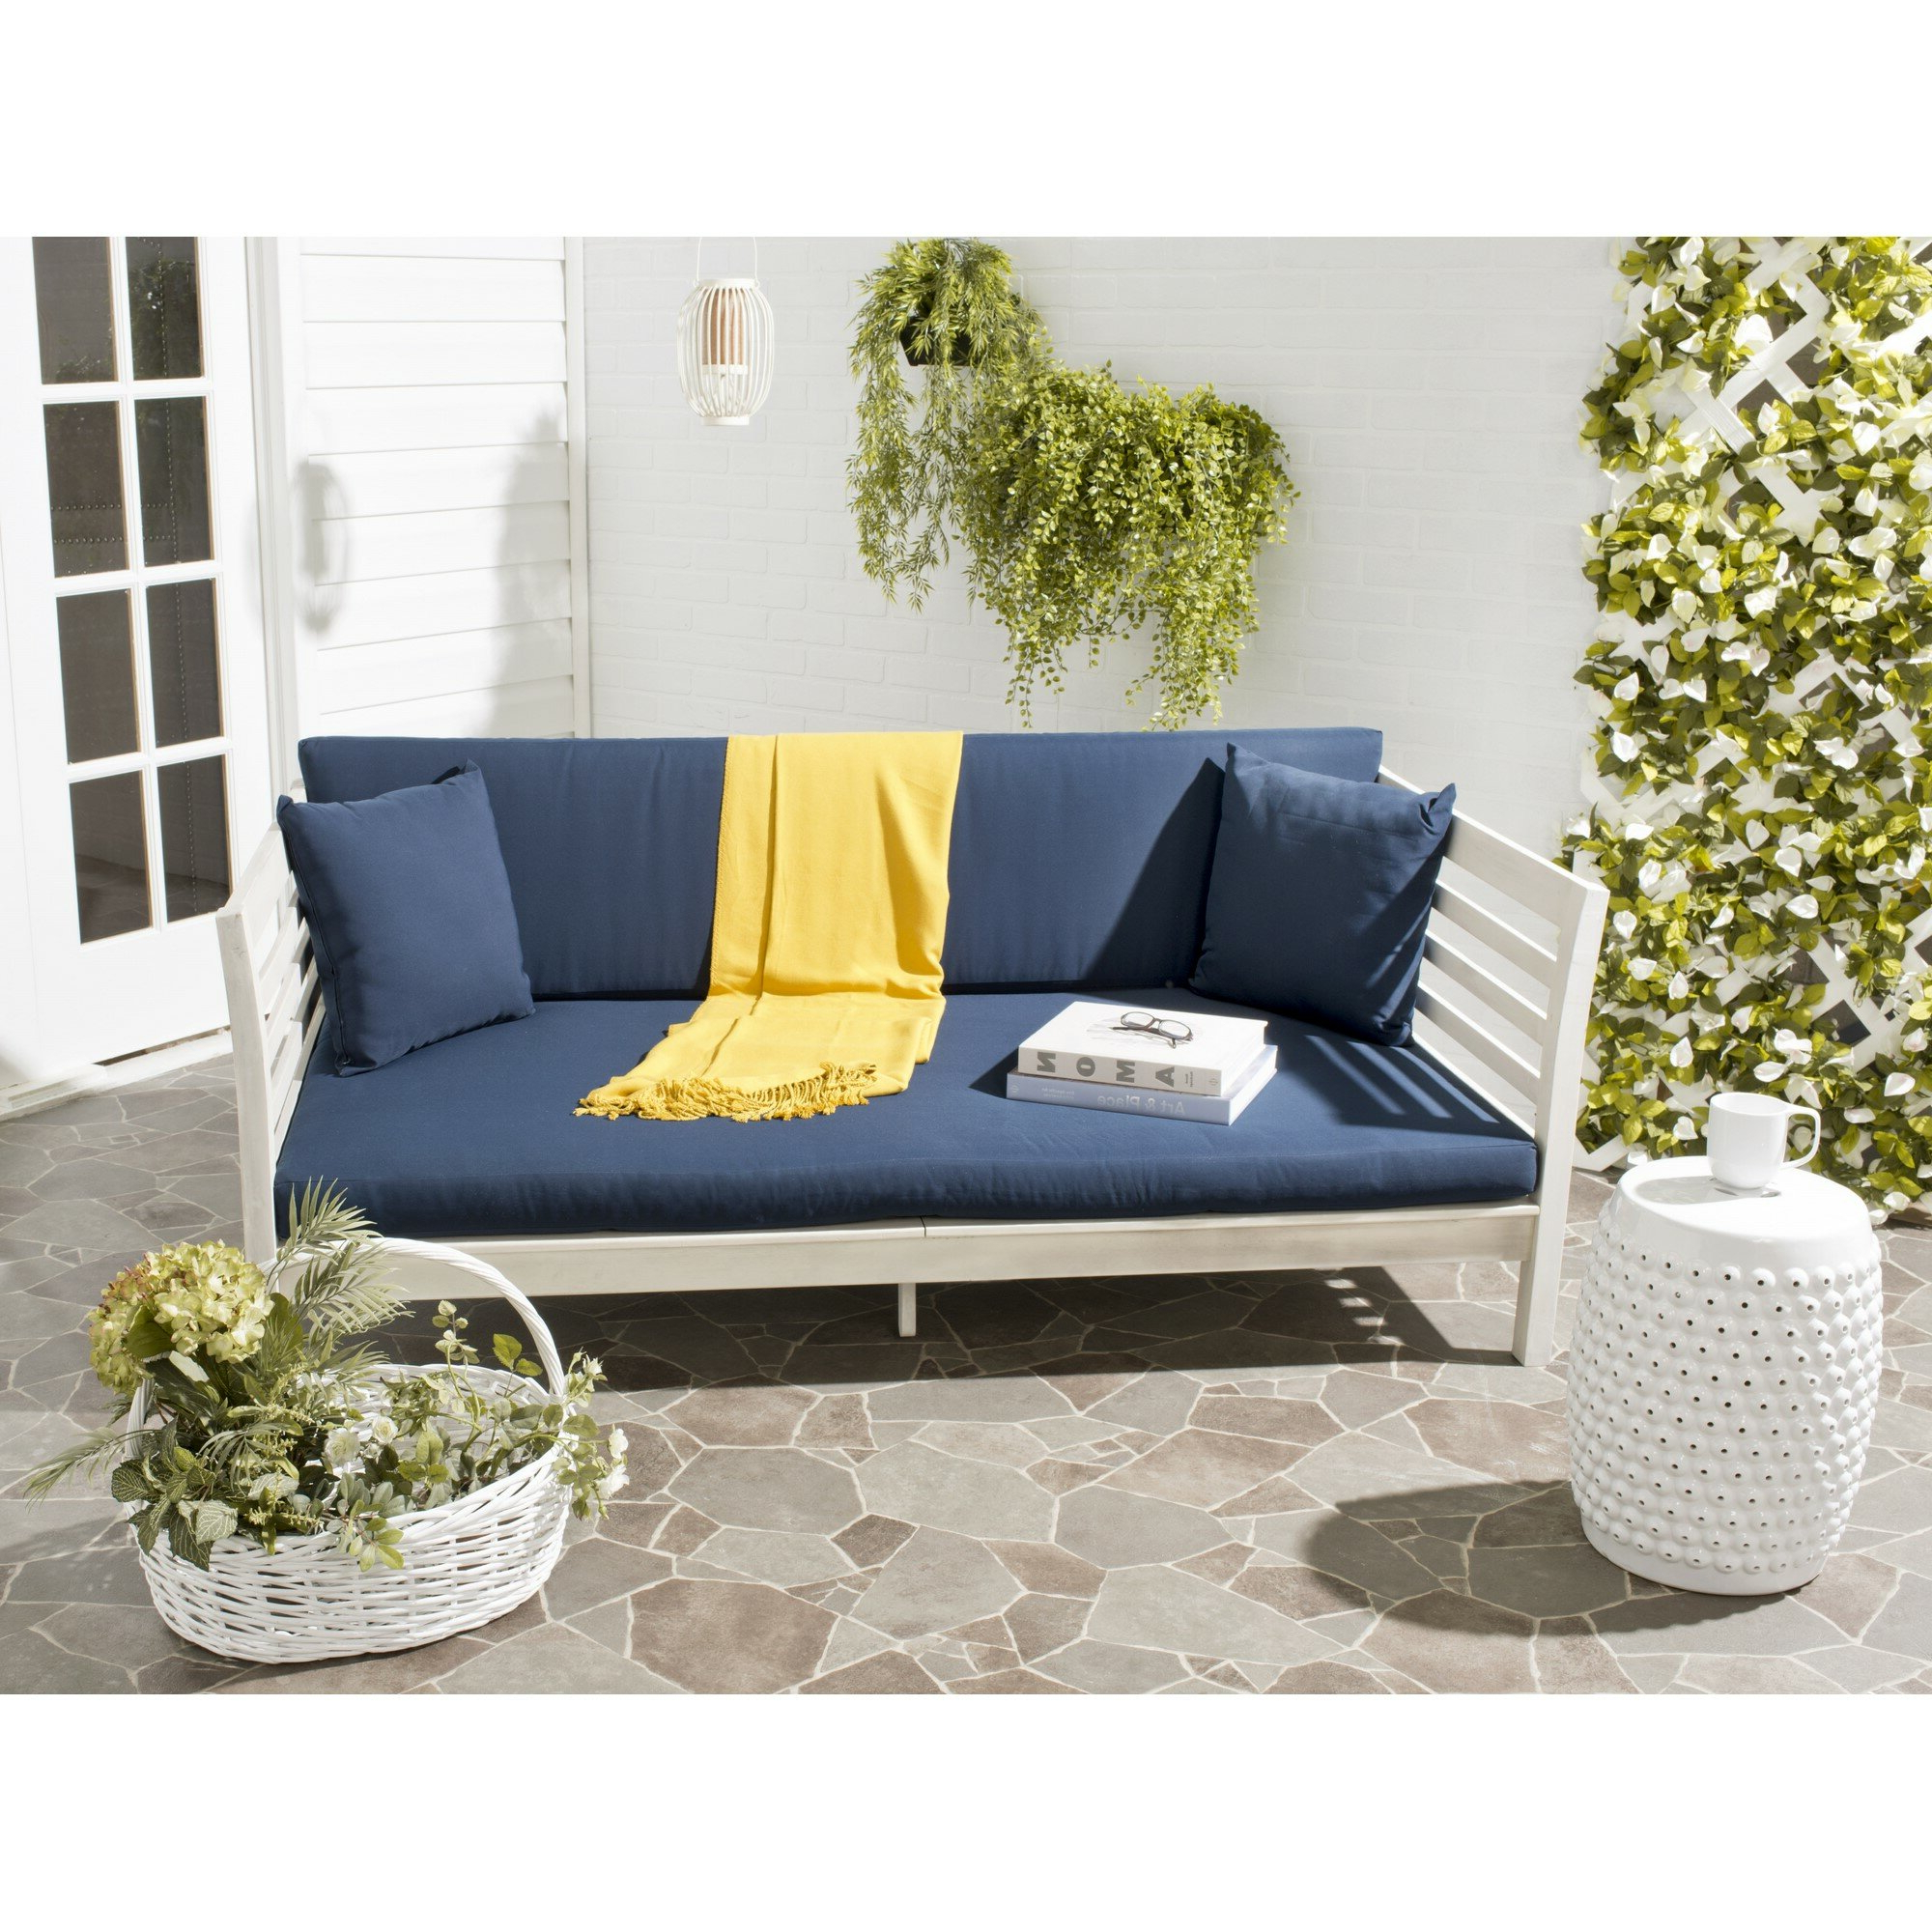 Preferred Bodine Patio Daybeds With Cushions With Regard To Bodine Patio Daybed With Cushions (View 22 of 25)